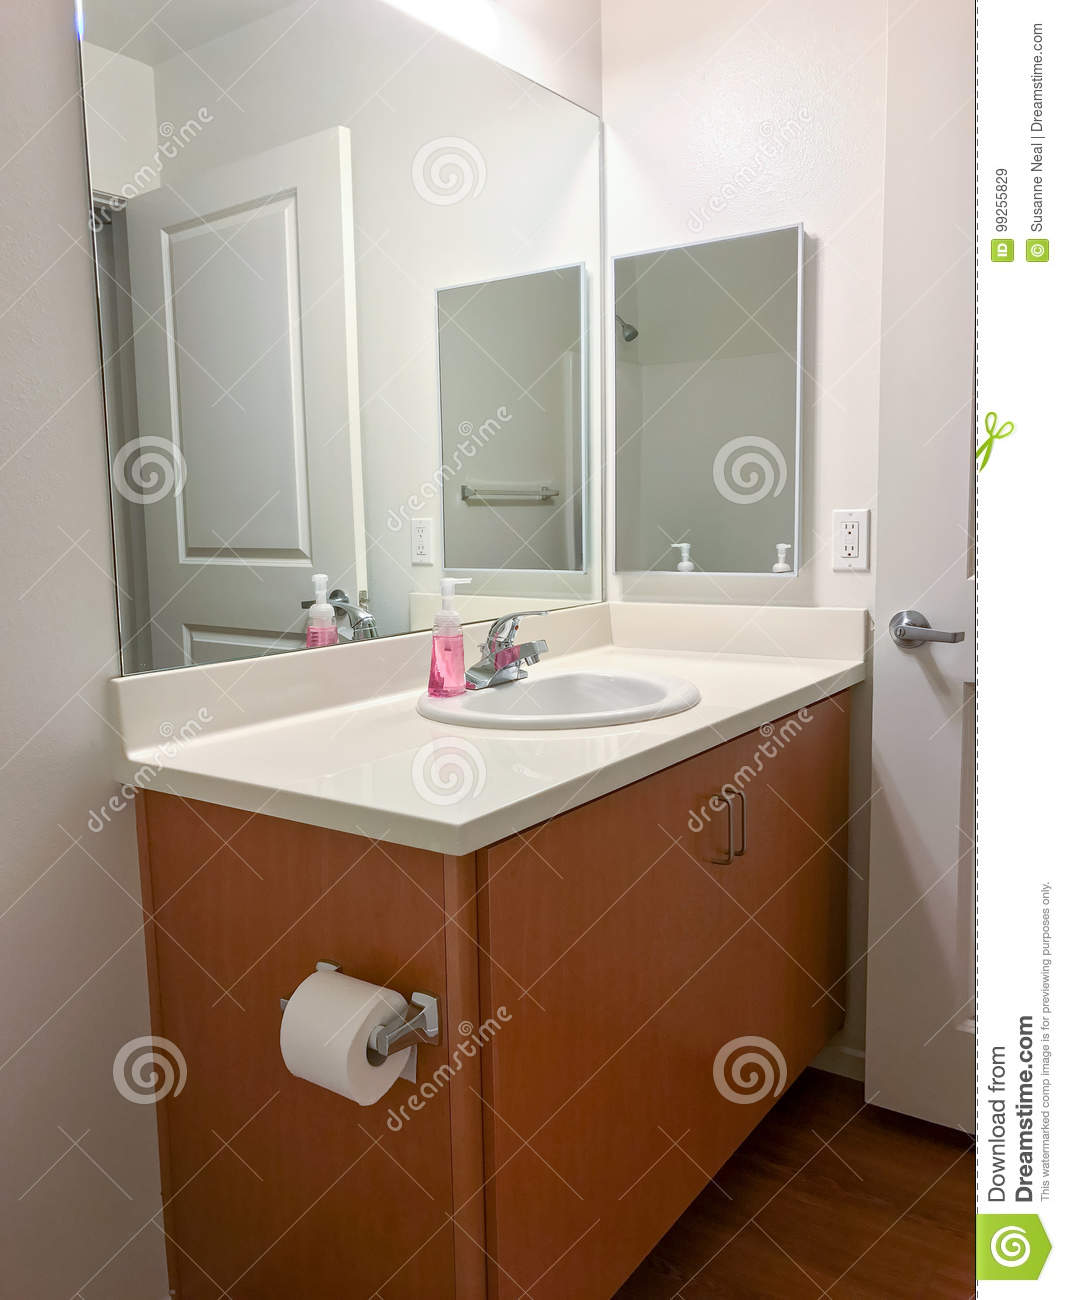 Bathroom With Mirrors Simple Bathroom Vanity With Mirrors And Sink Stock Image Image